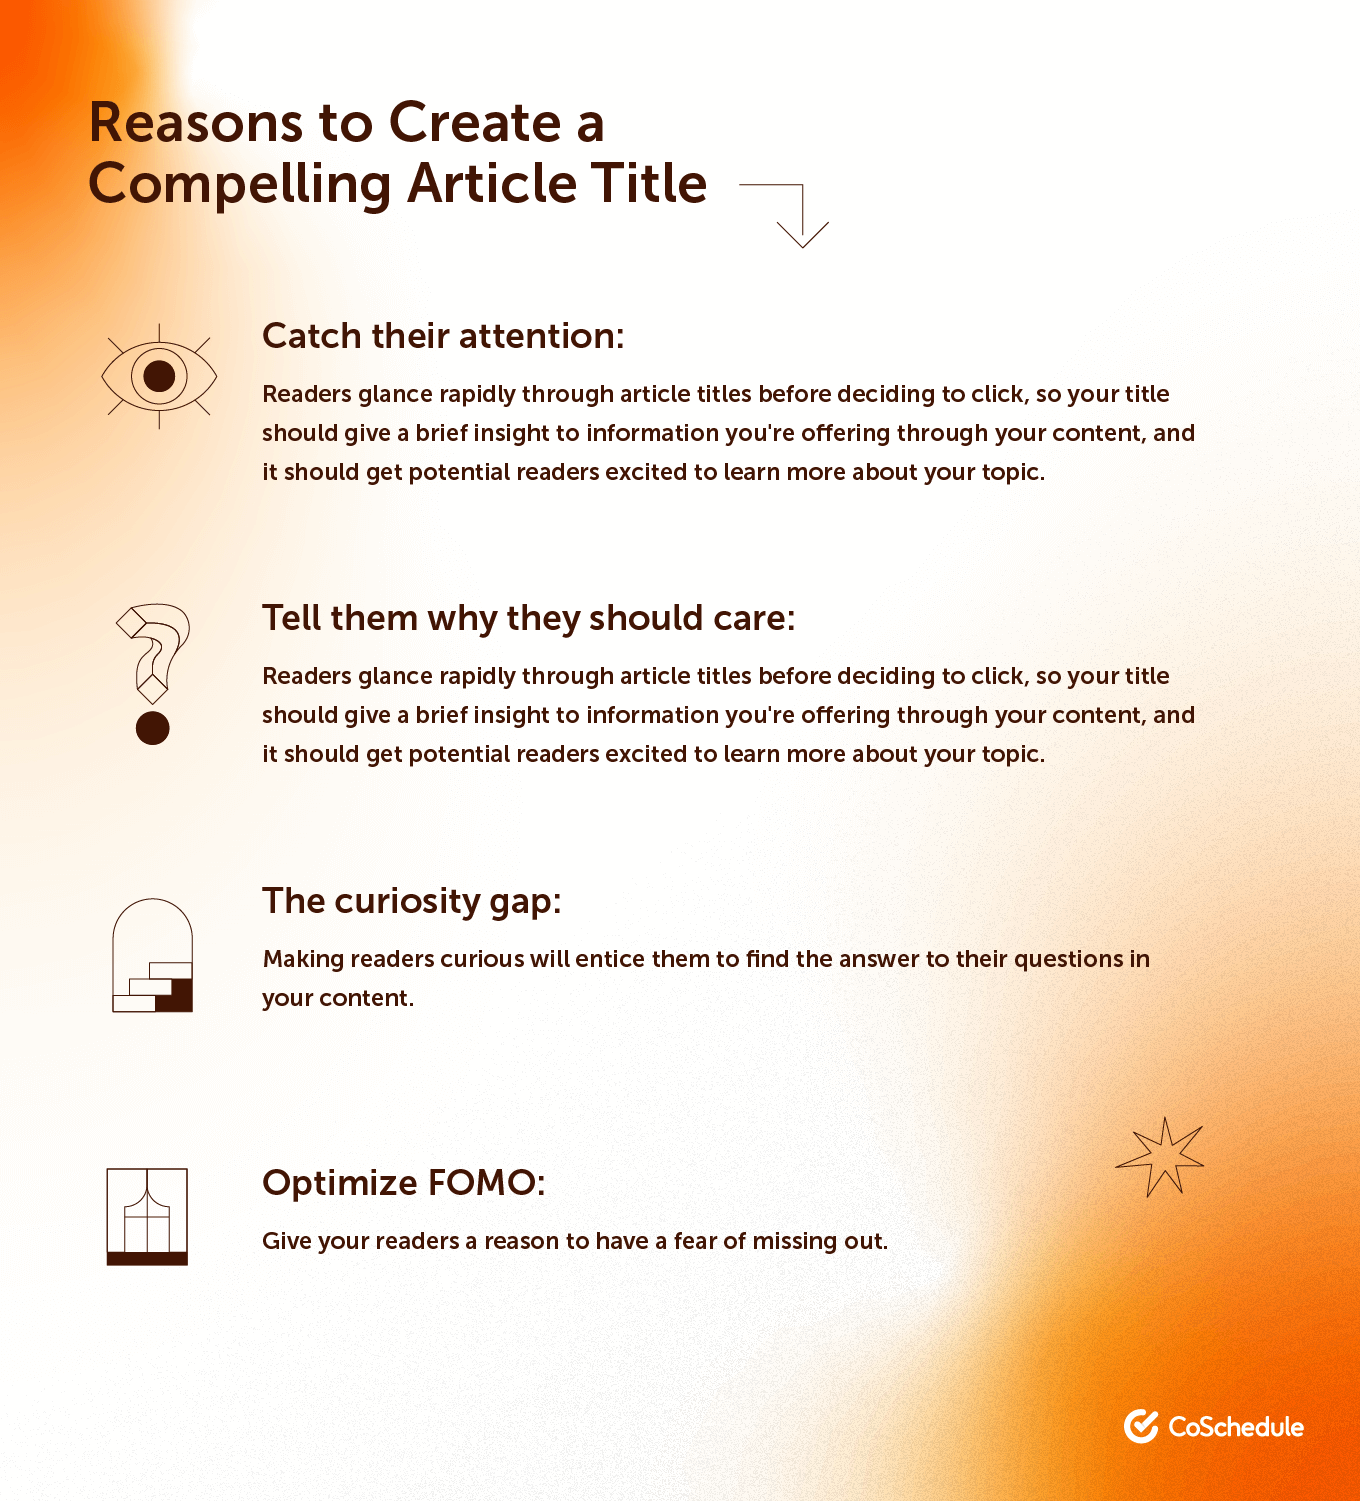 Reasons to Create a Compelling Article Title